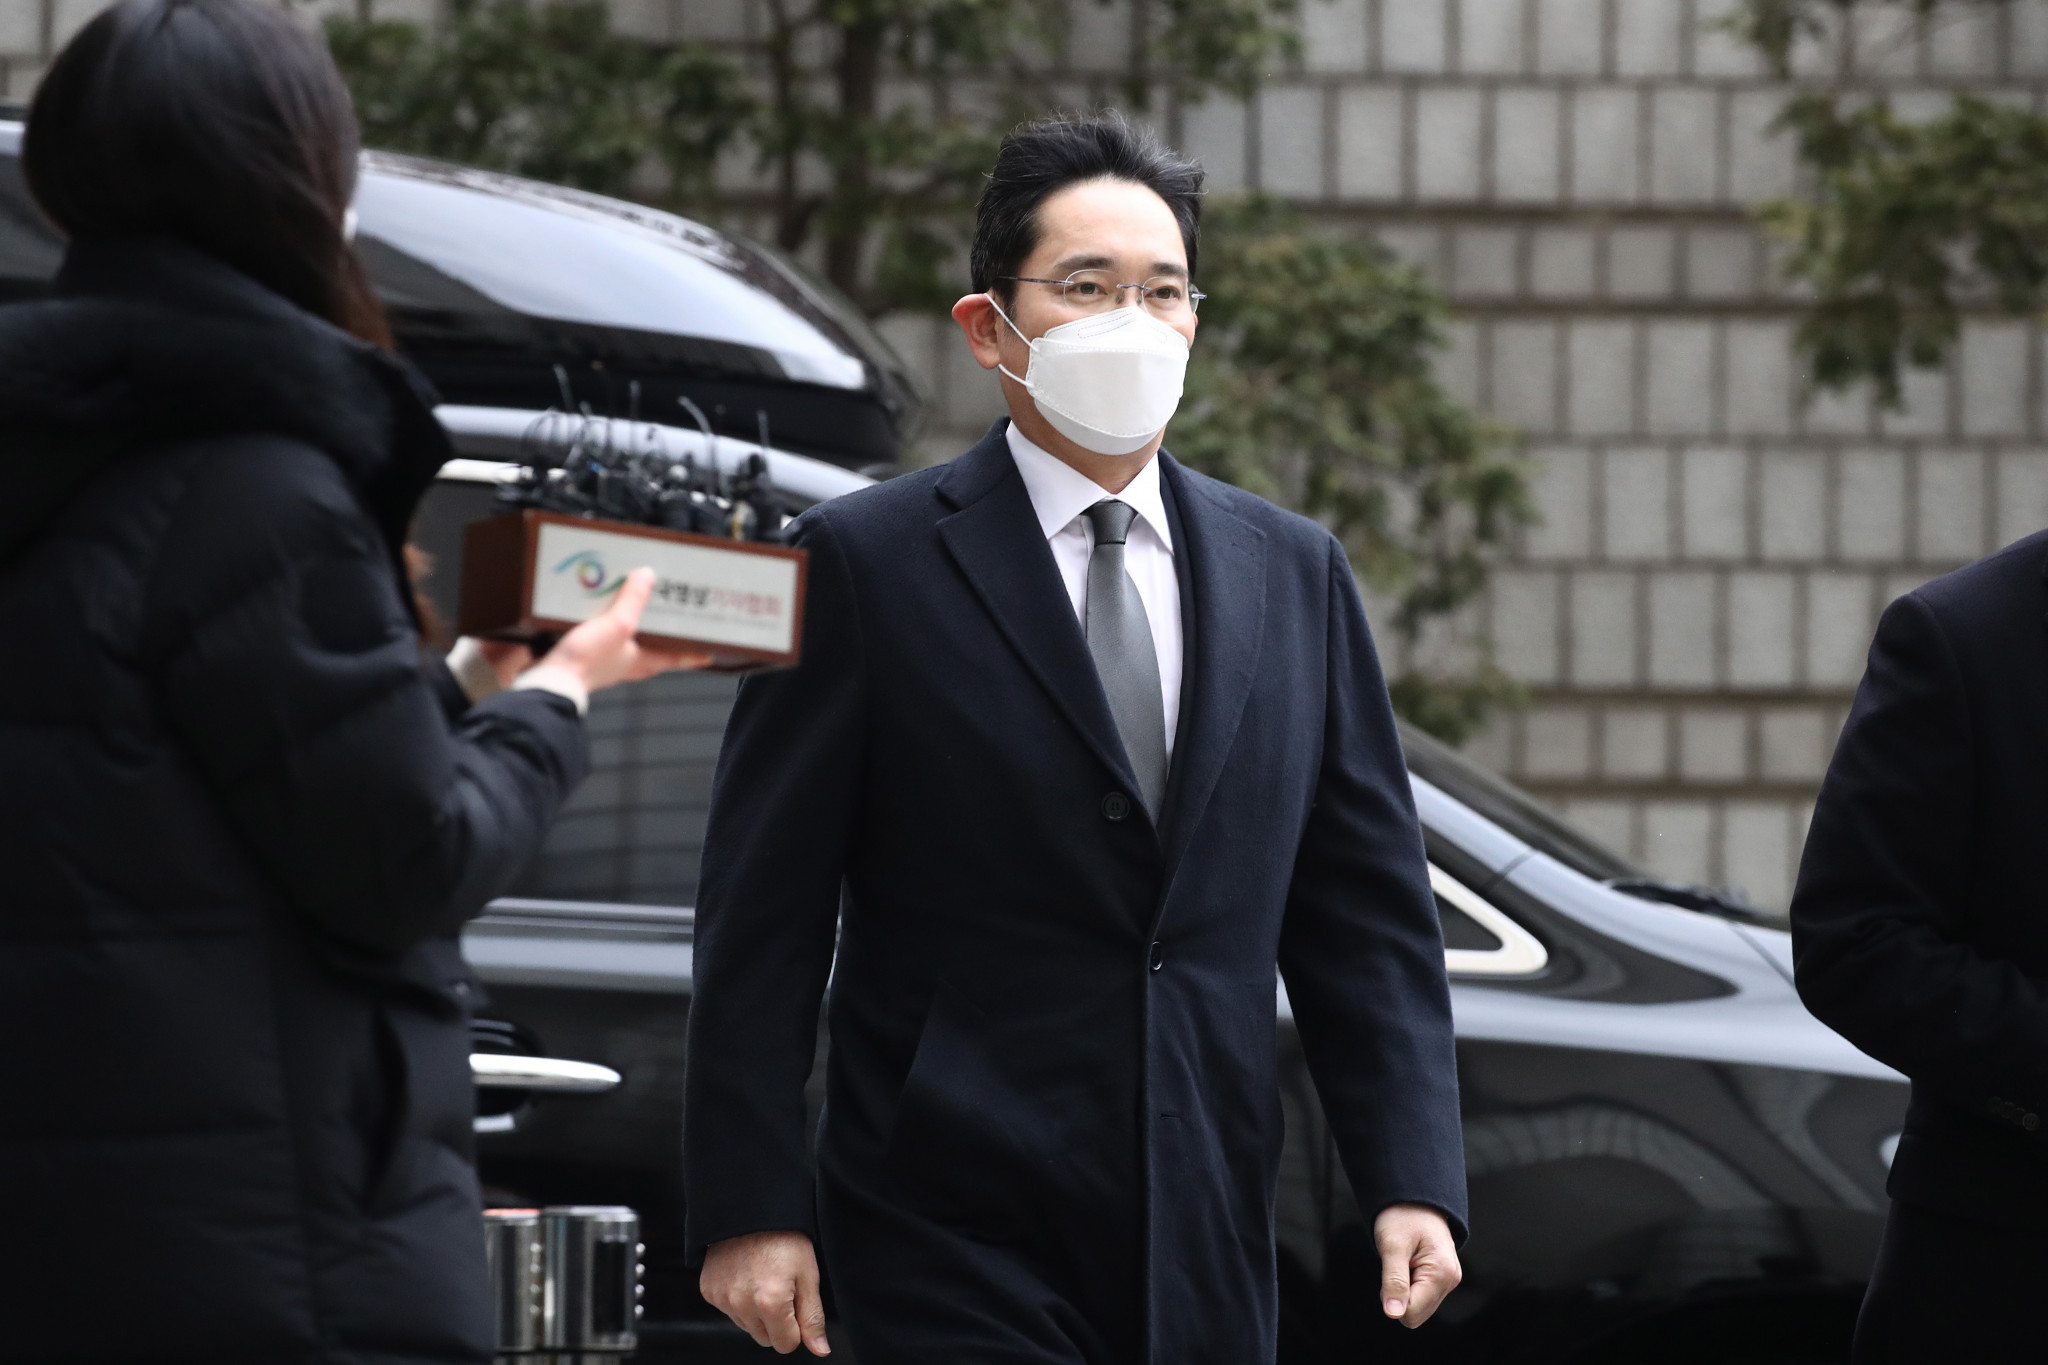 Samsung heir sentenced to 2.5 years in prison for corruption